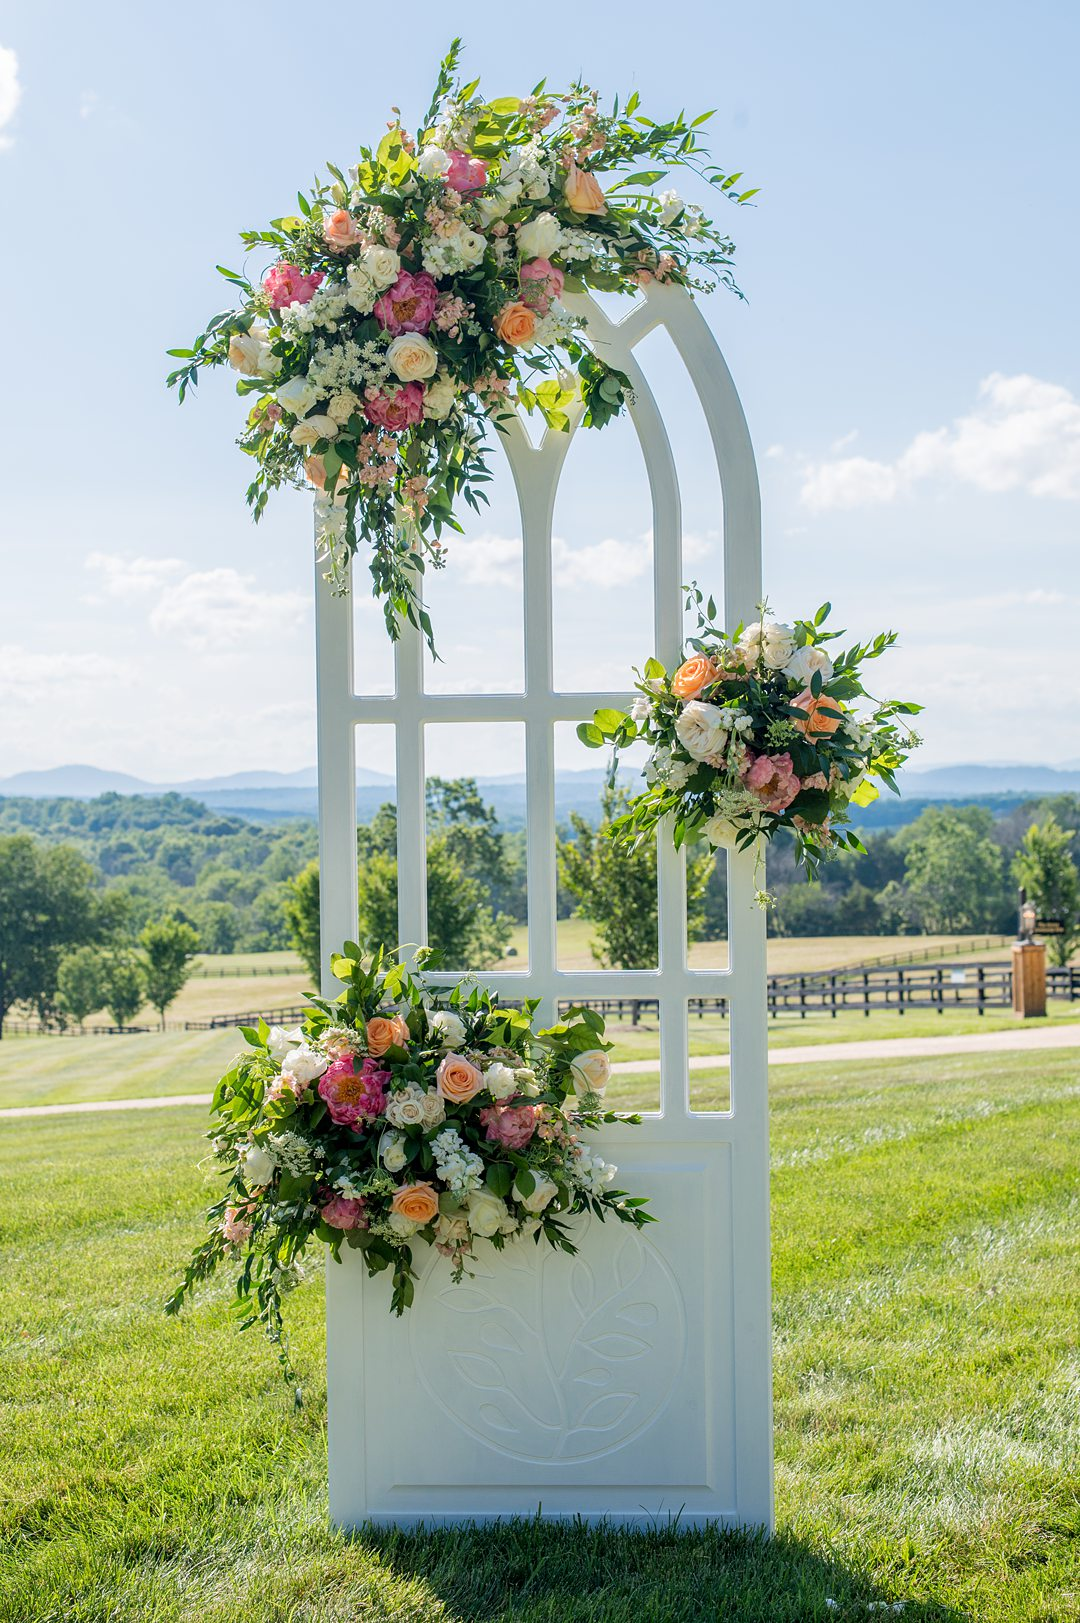 Small wedding ceremony details, in windows that were custom made and decorated with summer flowers. Photos by Mikkel Paige Photography at The Lodge at Mount Ida Farm in Charlottesville, VA. Planning by Mary Elizabeth Events. #mikkelpaige #Charlottesvillewedding #picturesqueceremony